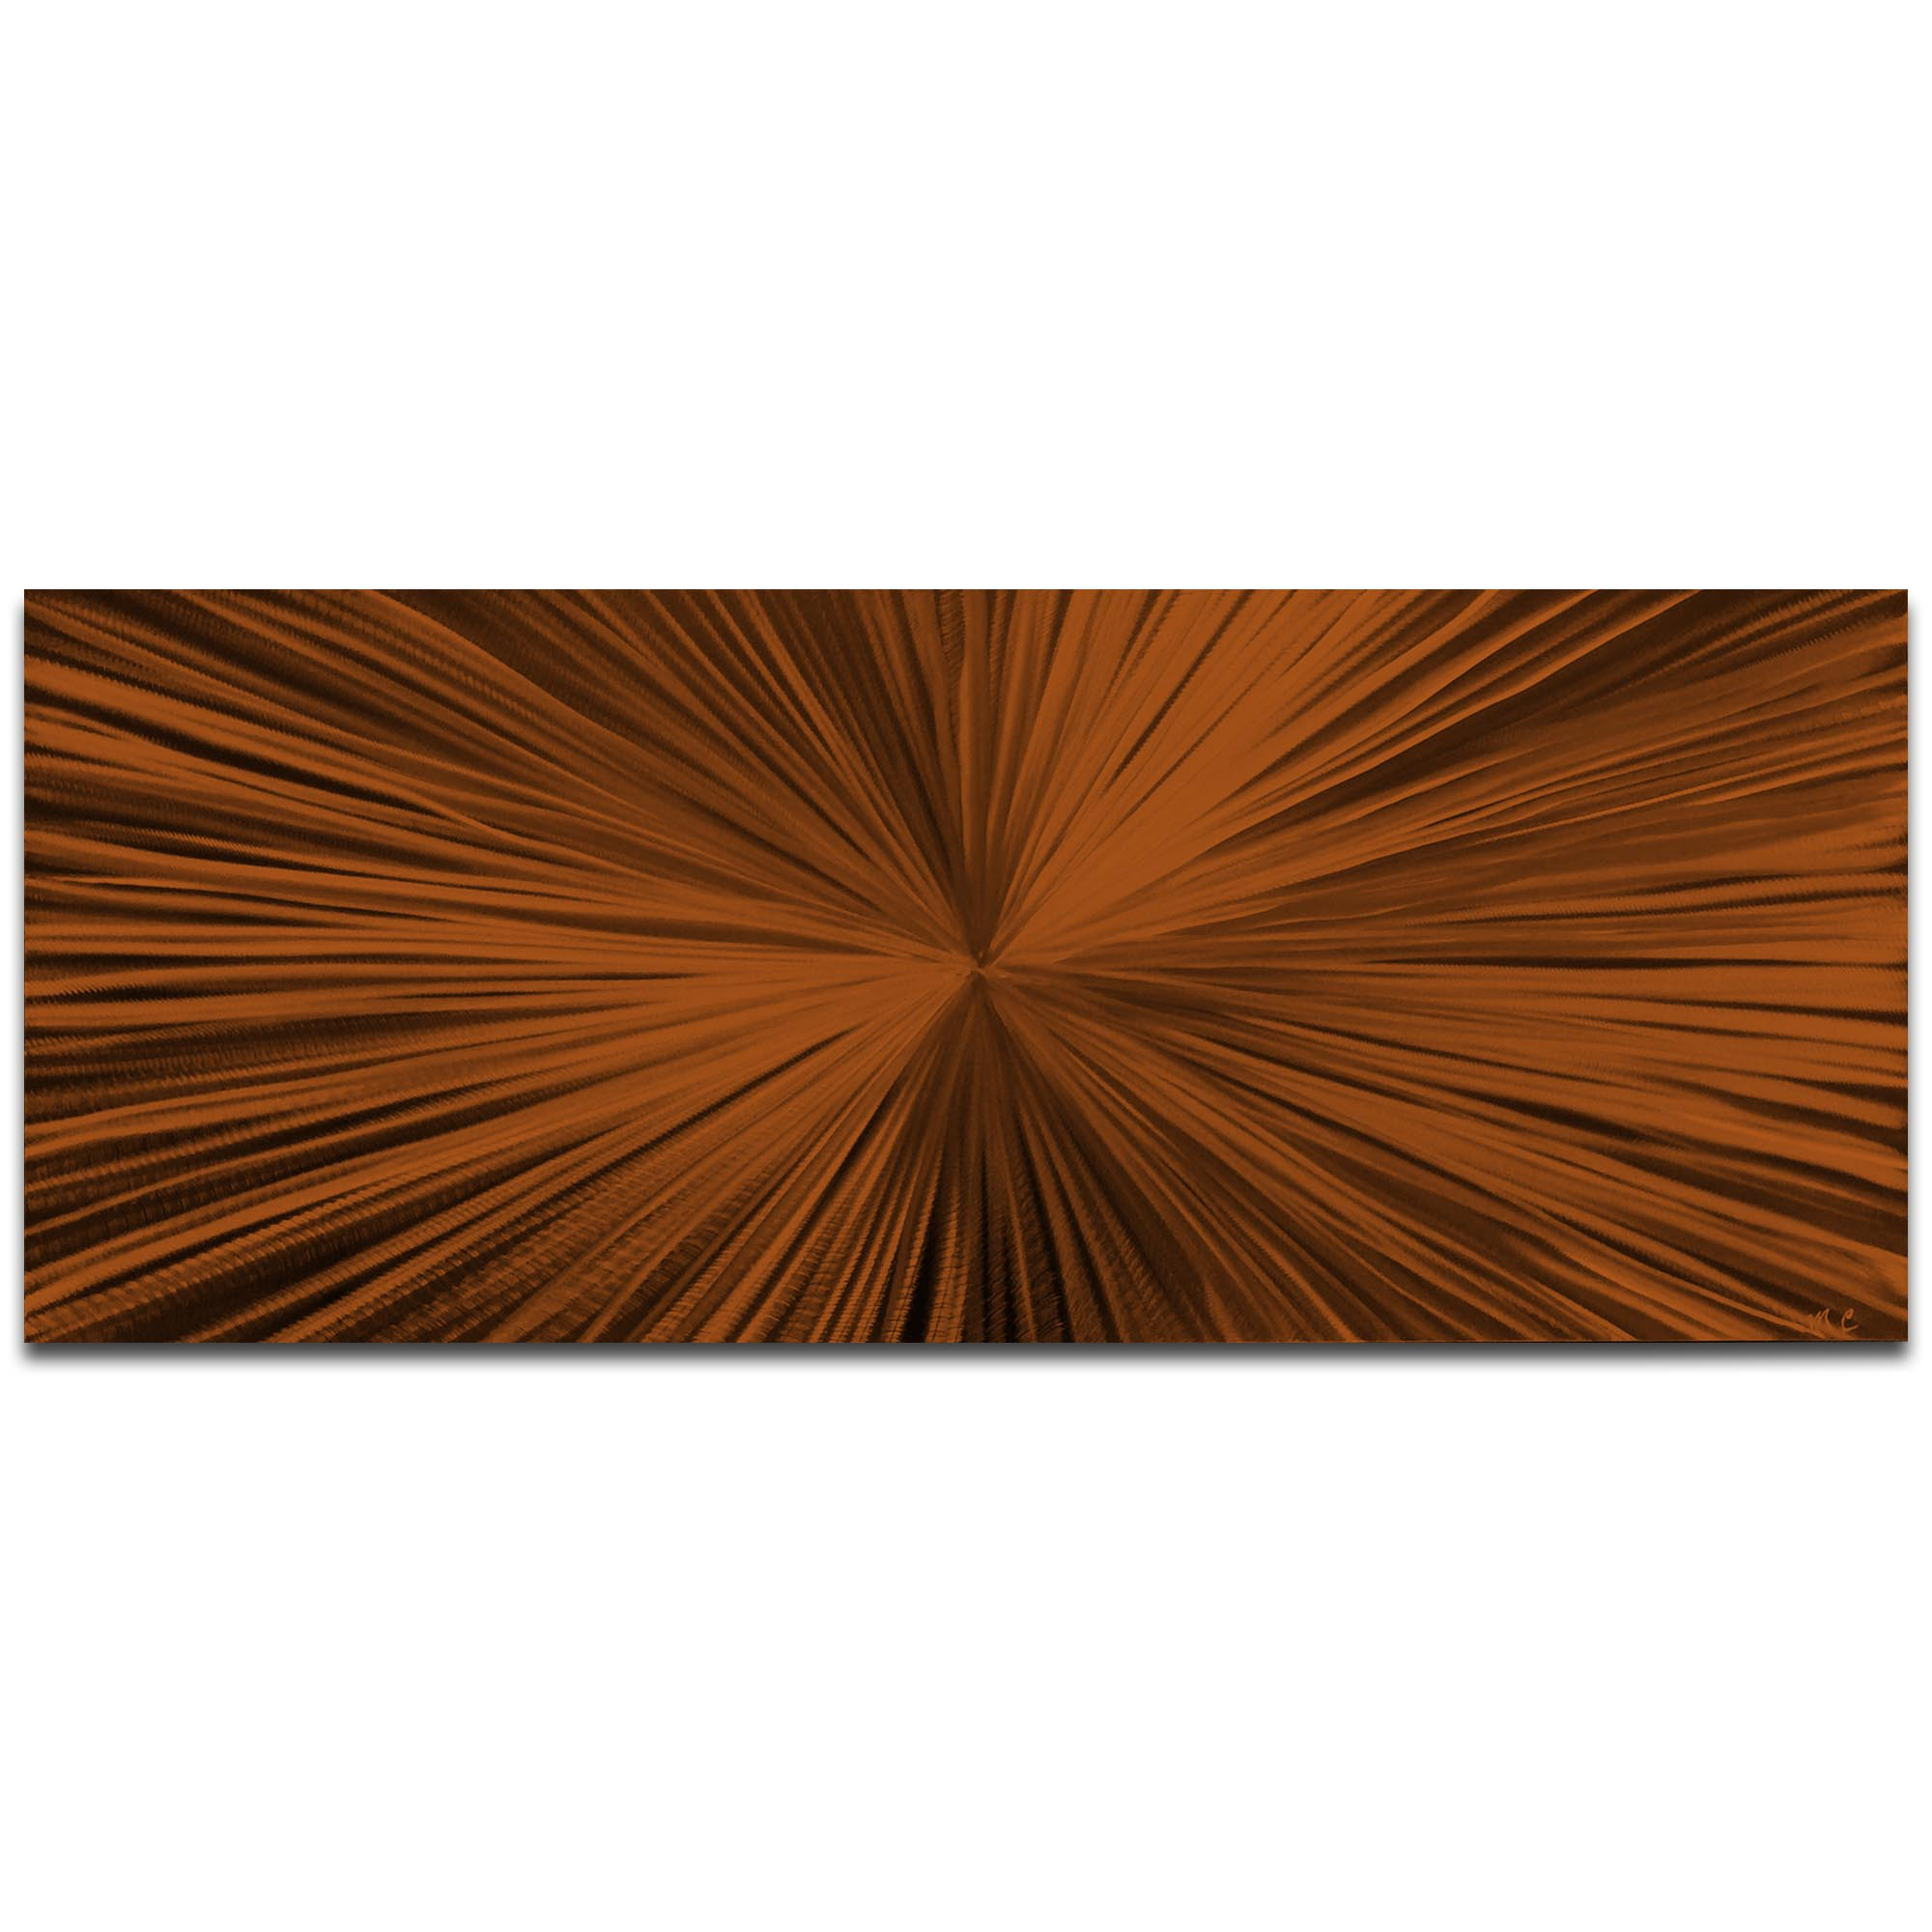 Helena Martin 'Starburst Brown' 60in x 24in Original Abstract Art on Ground and Painted Metal